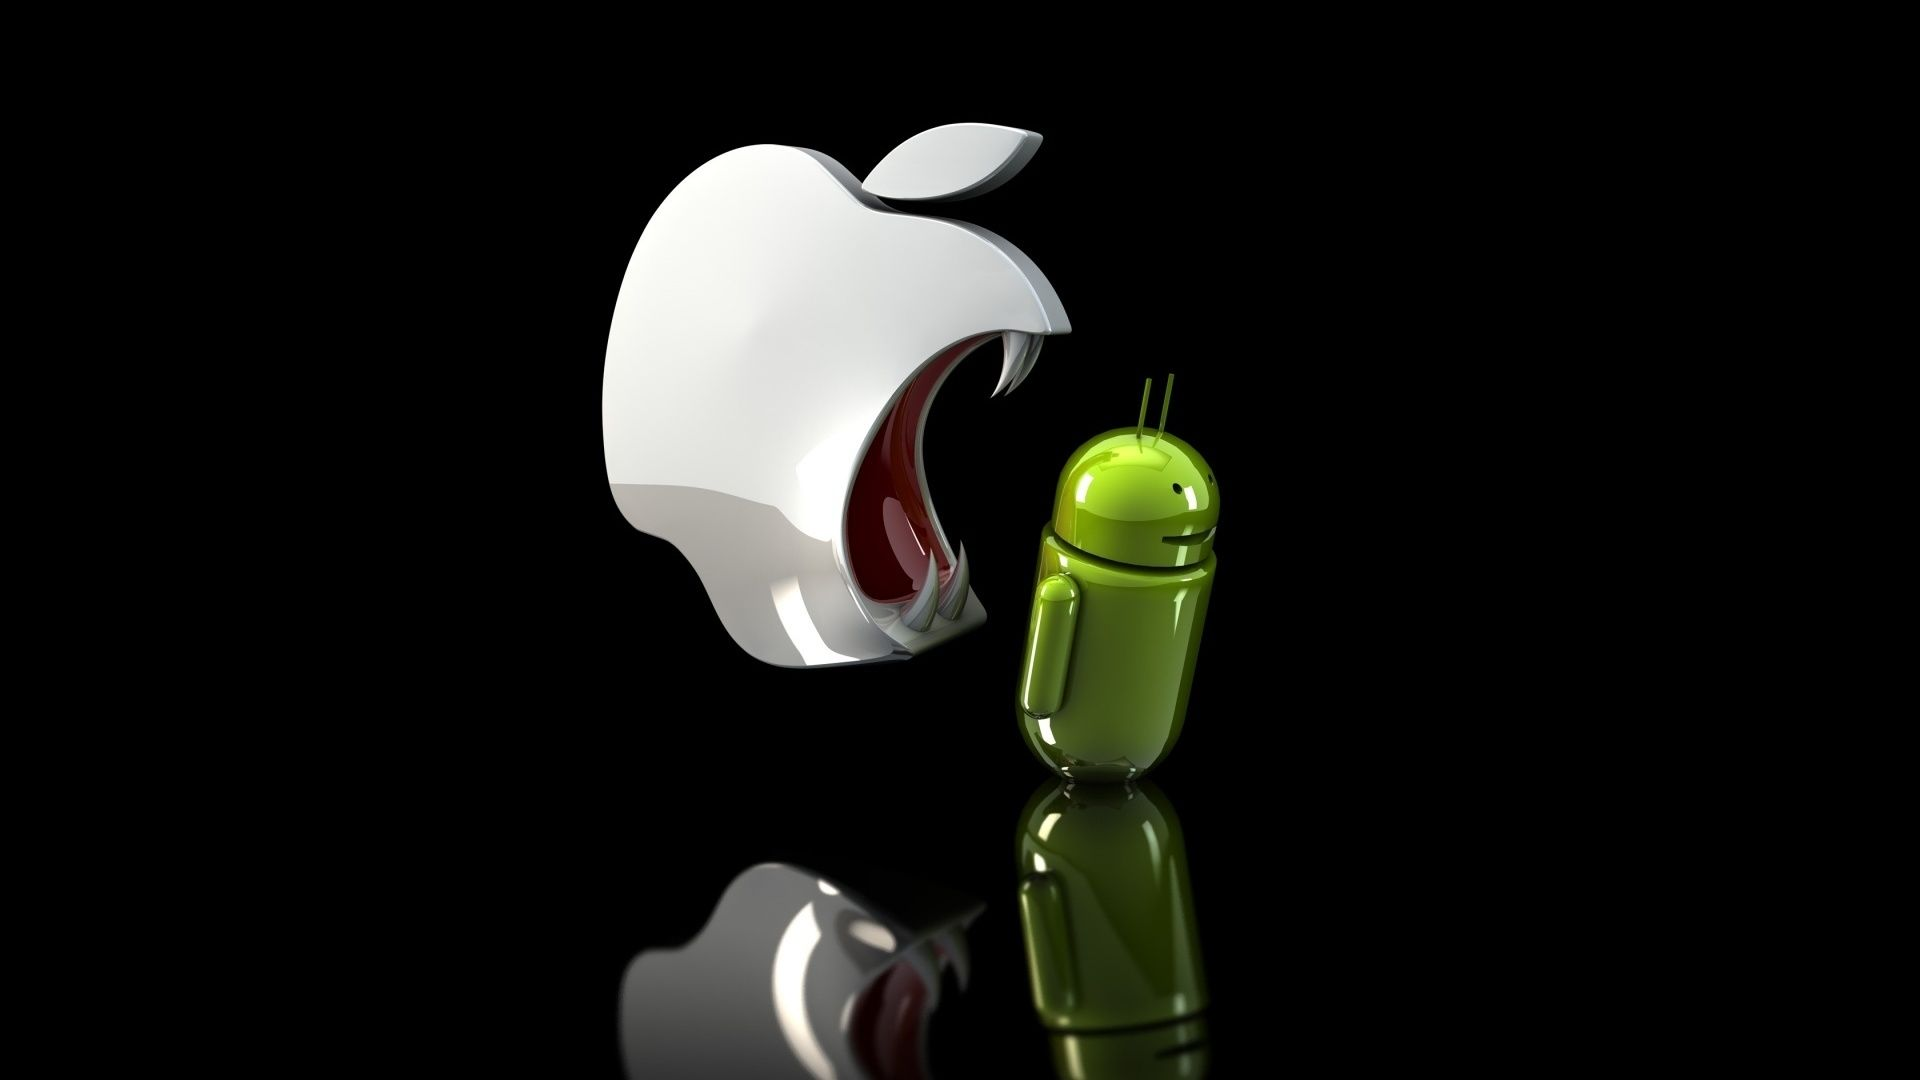 3d Apple Wallpaper Download Free Android Phone Wallpaper Apple Wallpaper Android Art